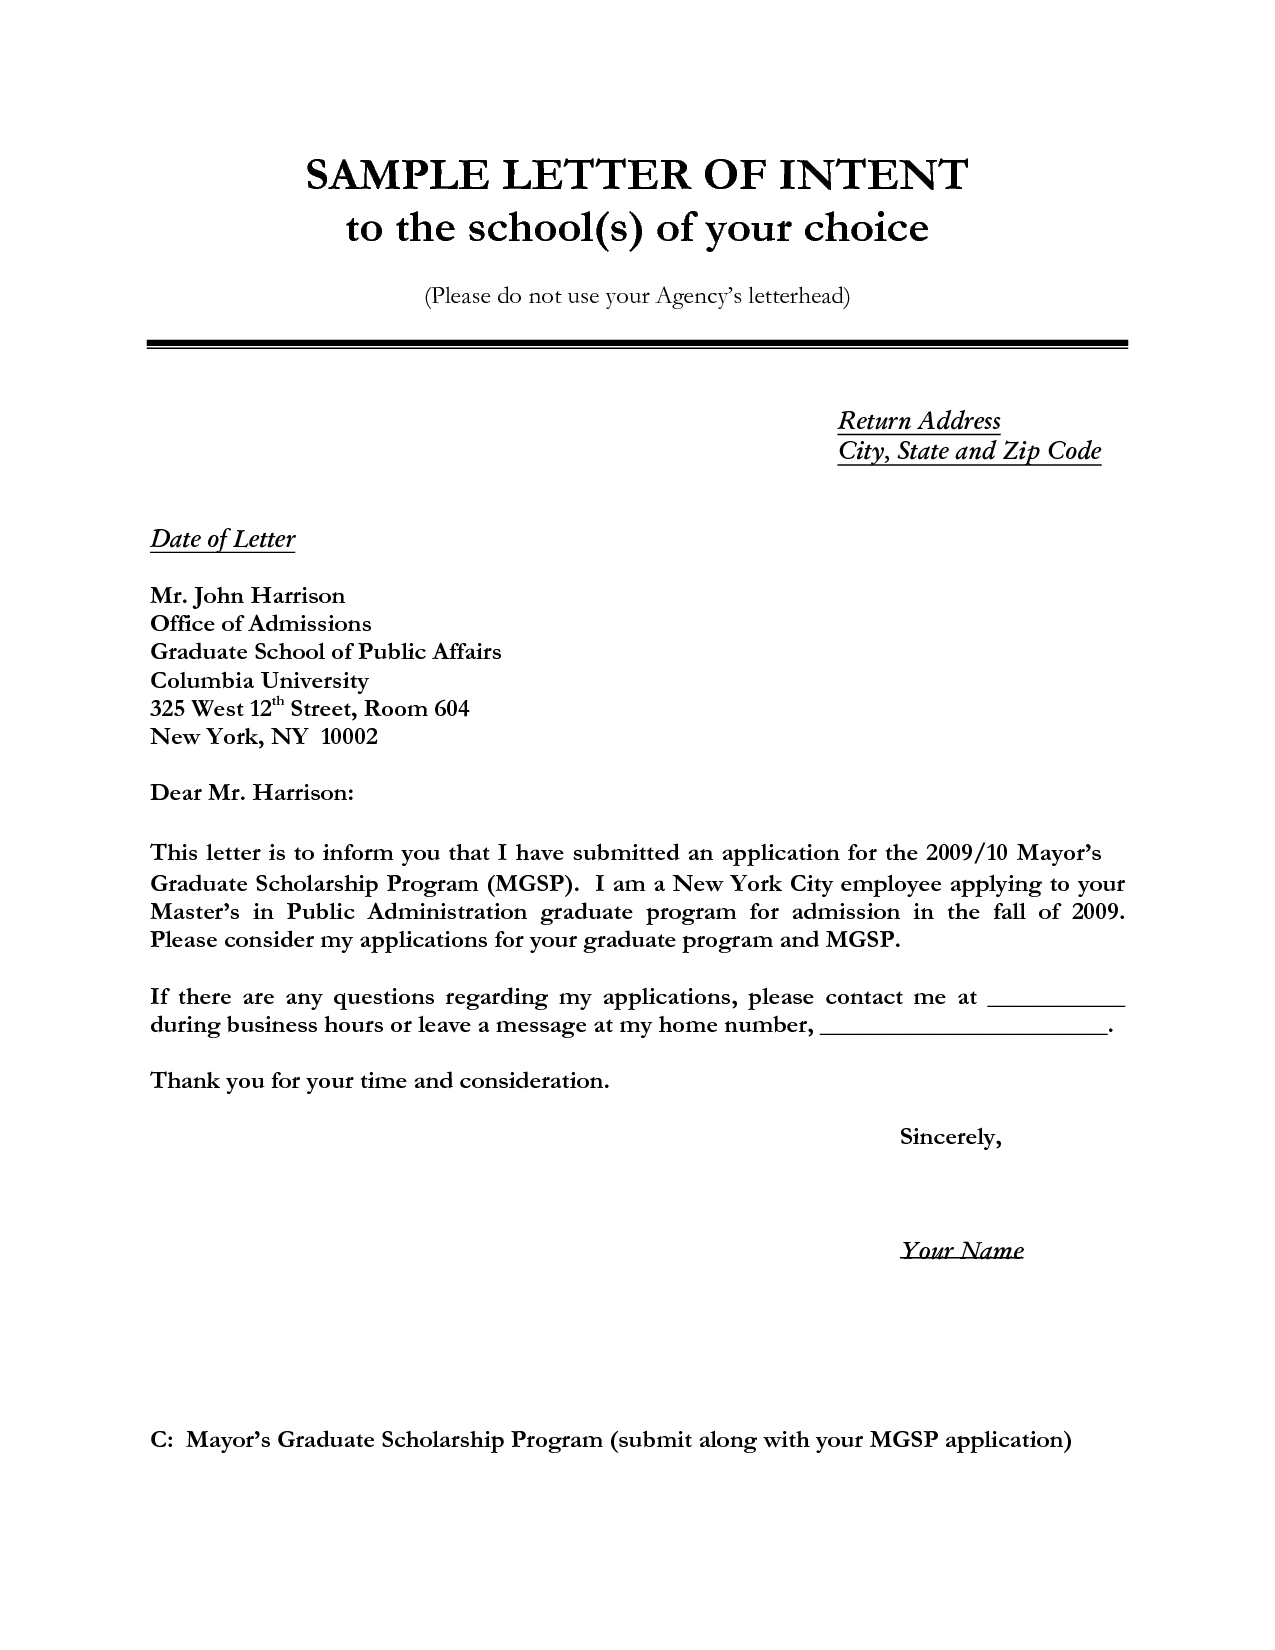 Real Estate Introduction Letter to Friends Template - Letter Of Intent Sample